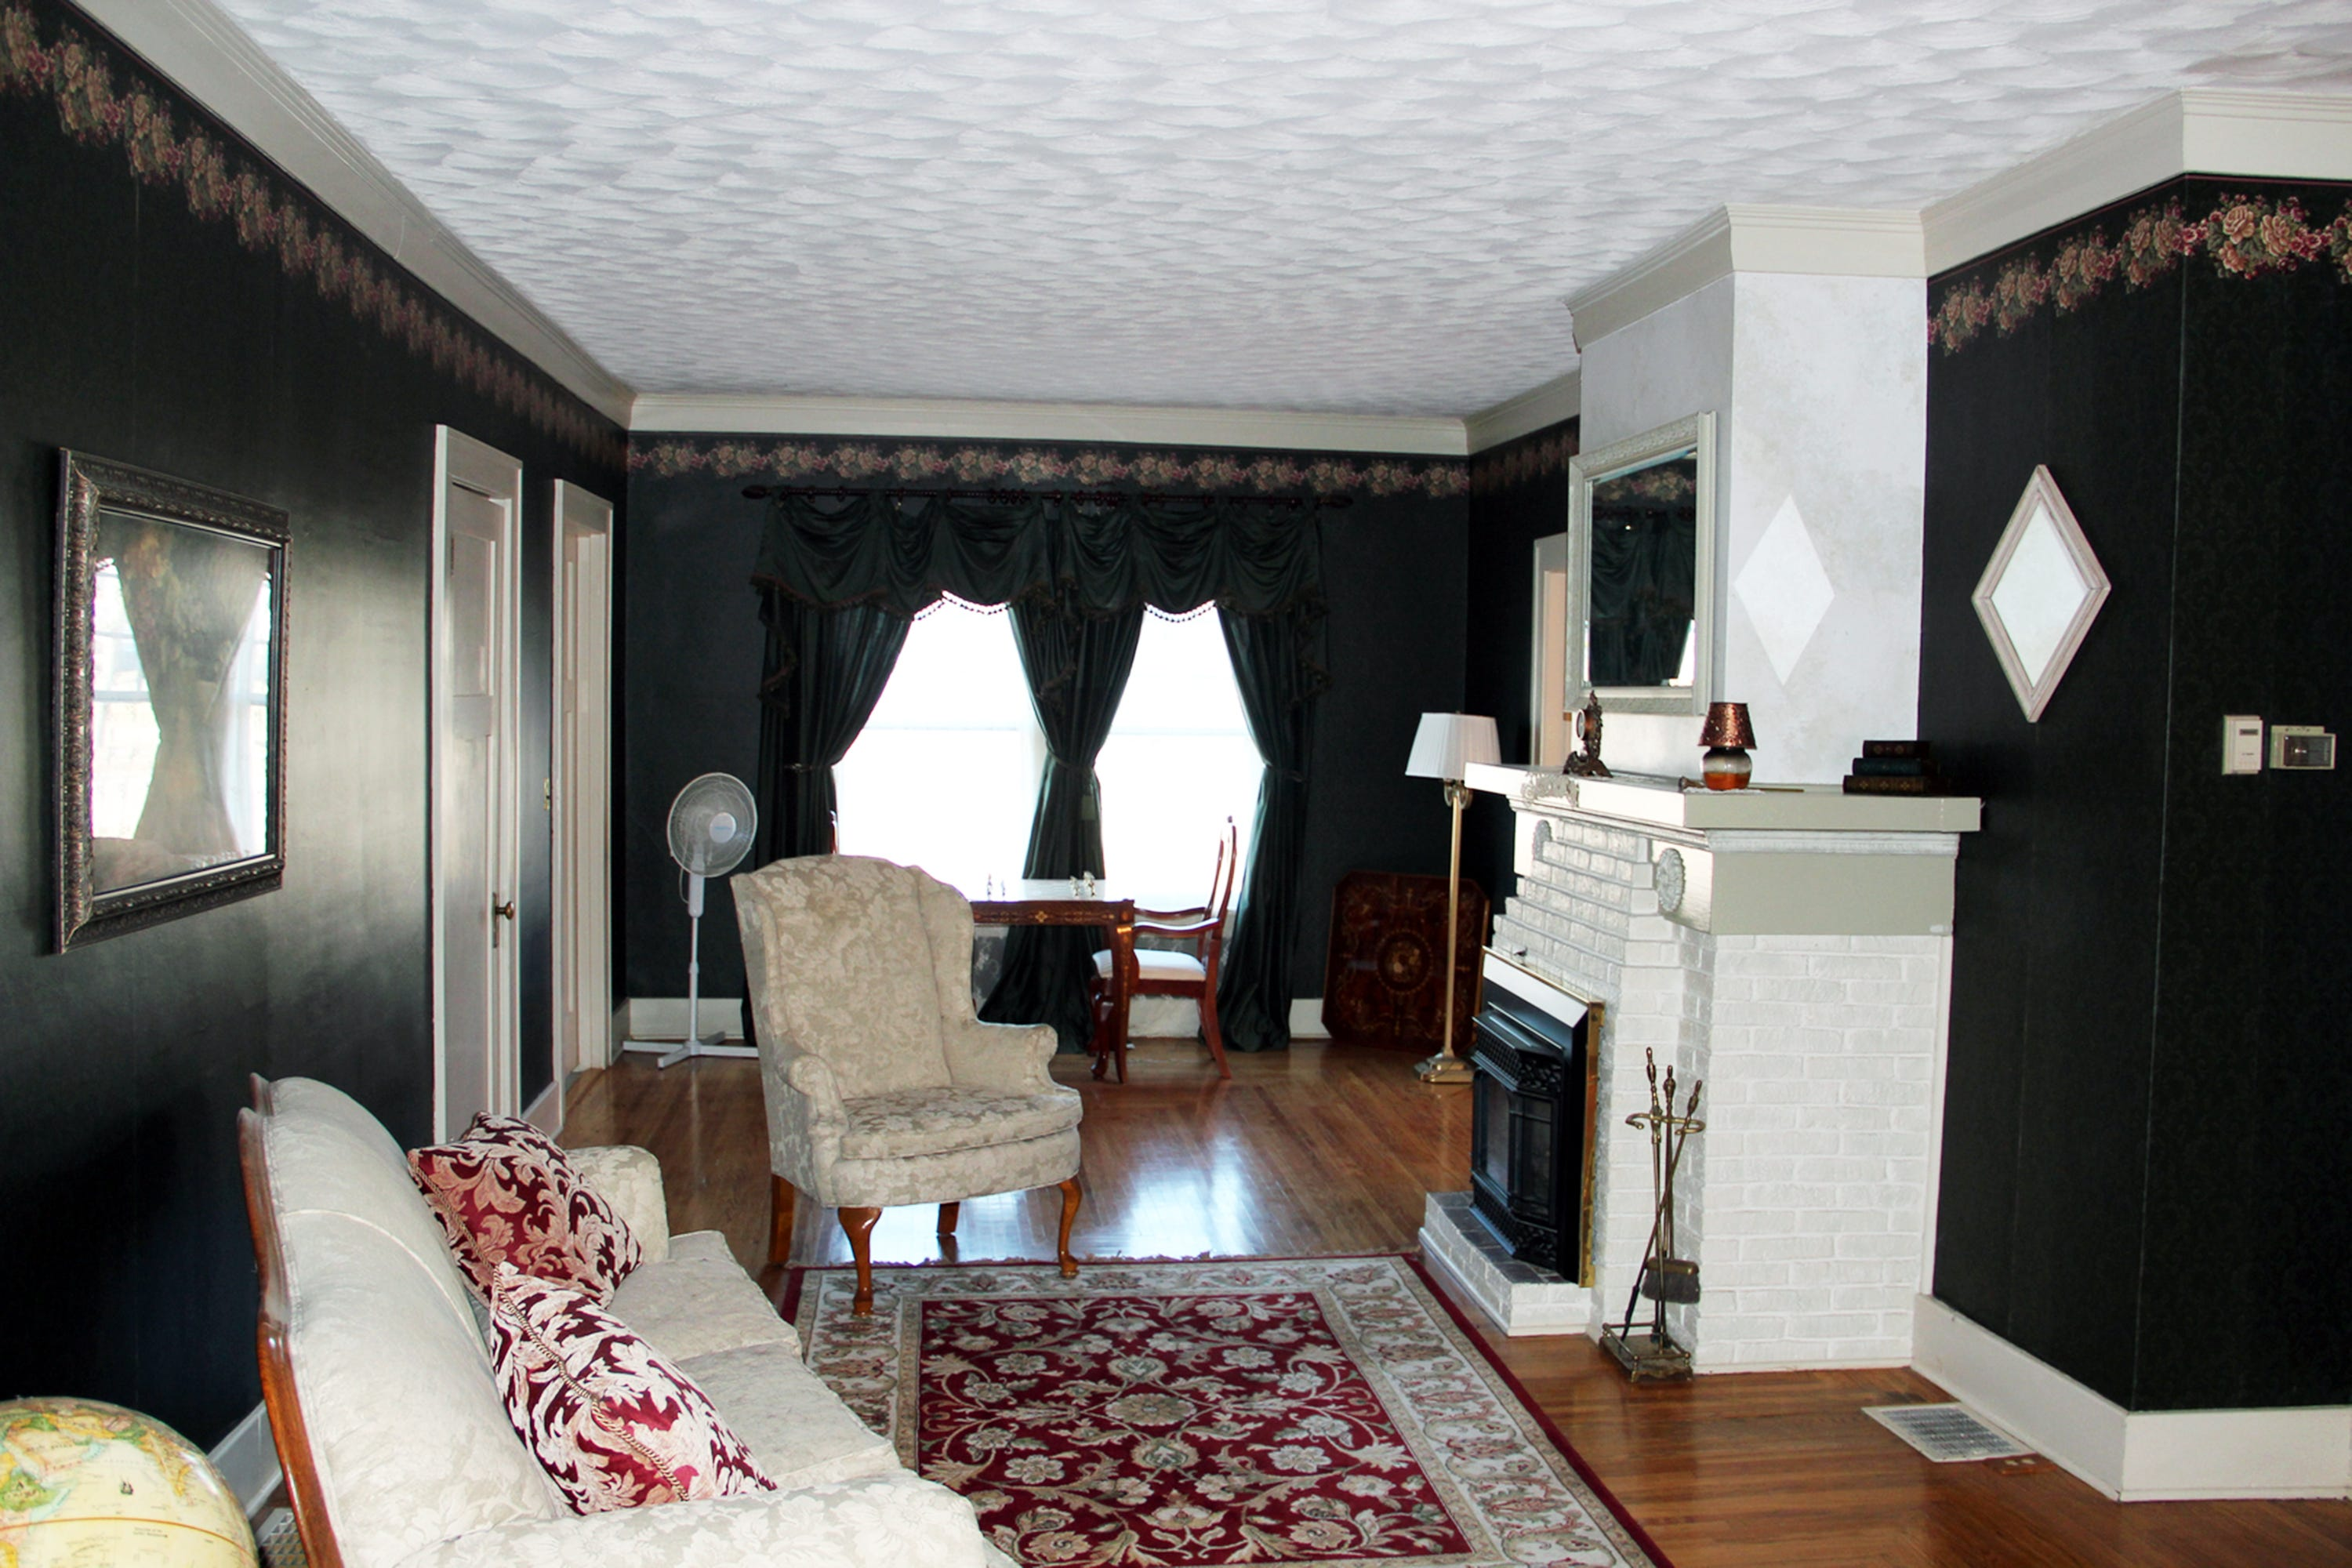 5000 square foot house on market for 137 900 for 11x12 room in square feet